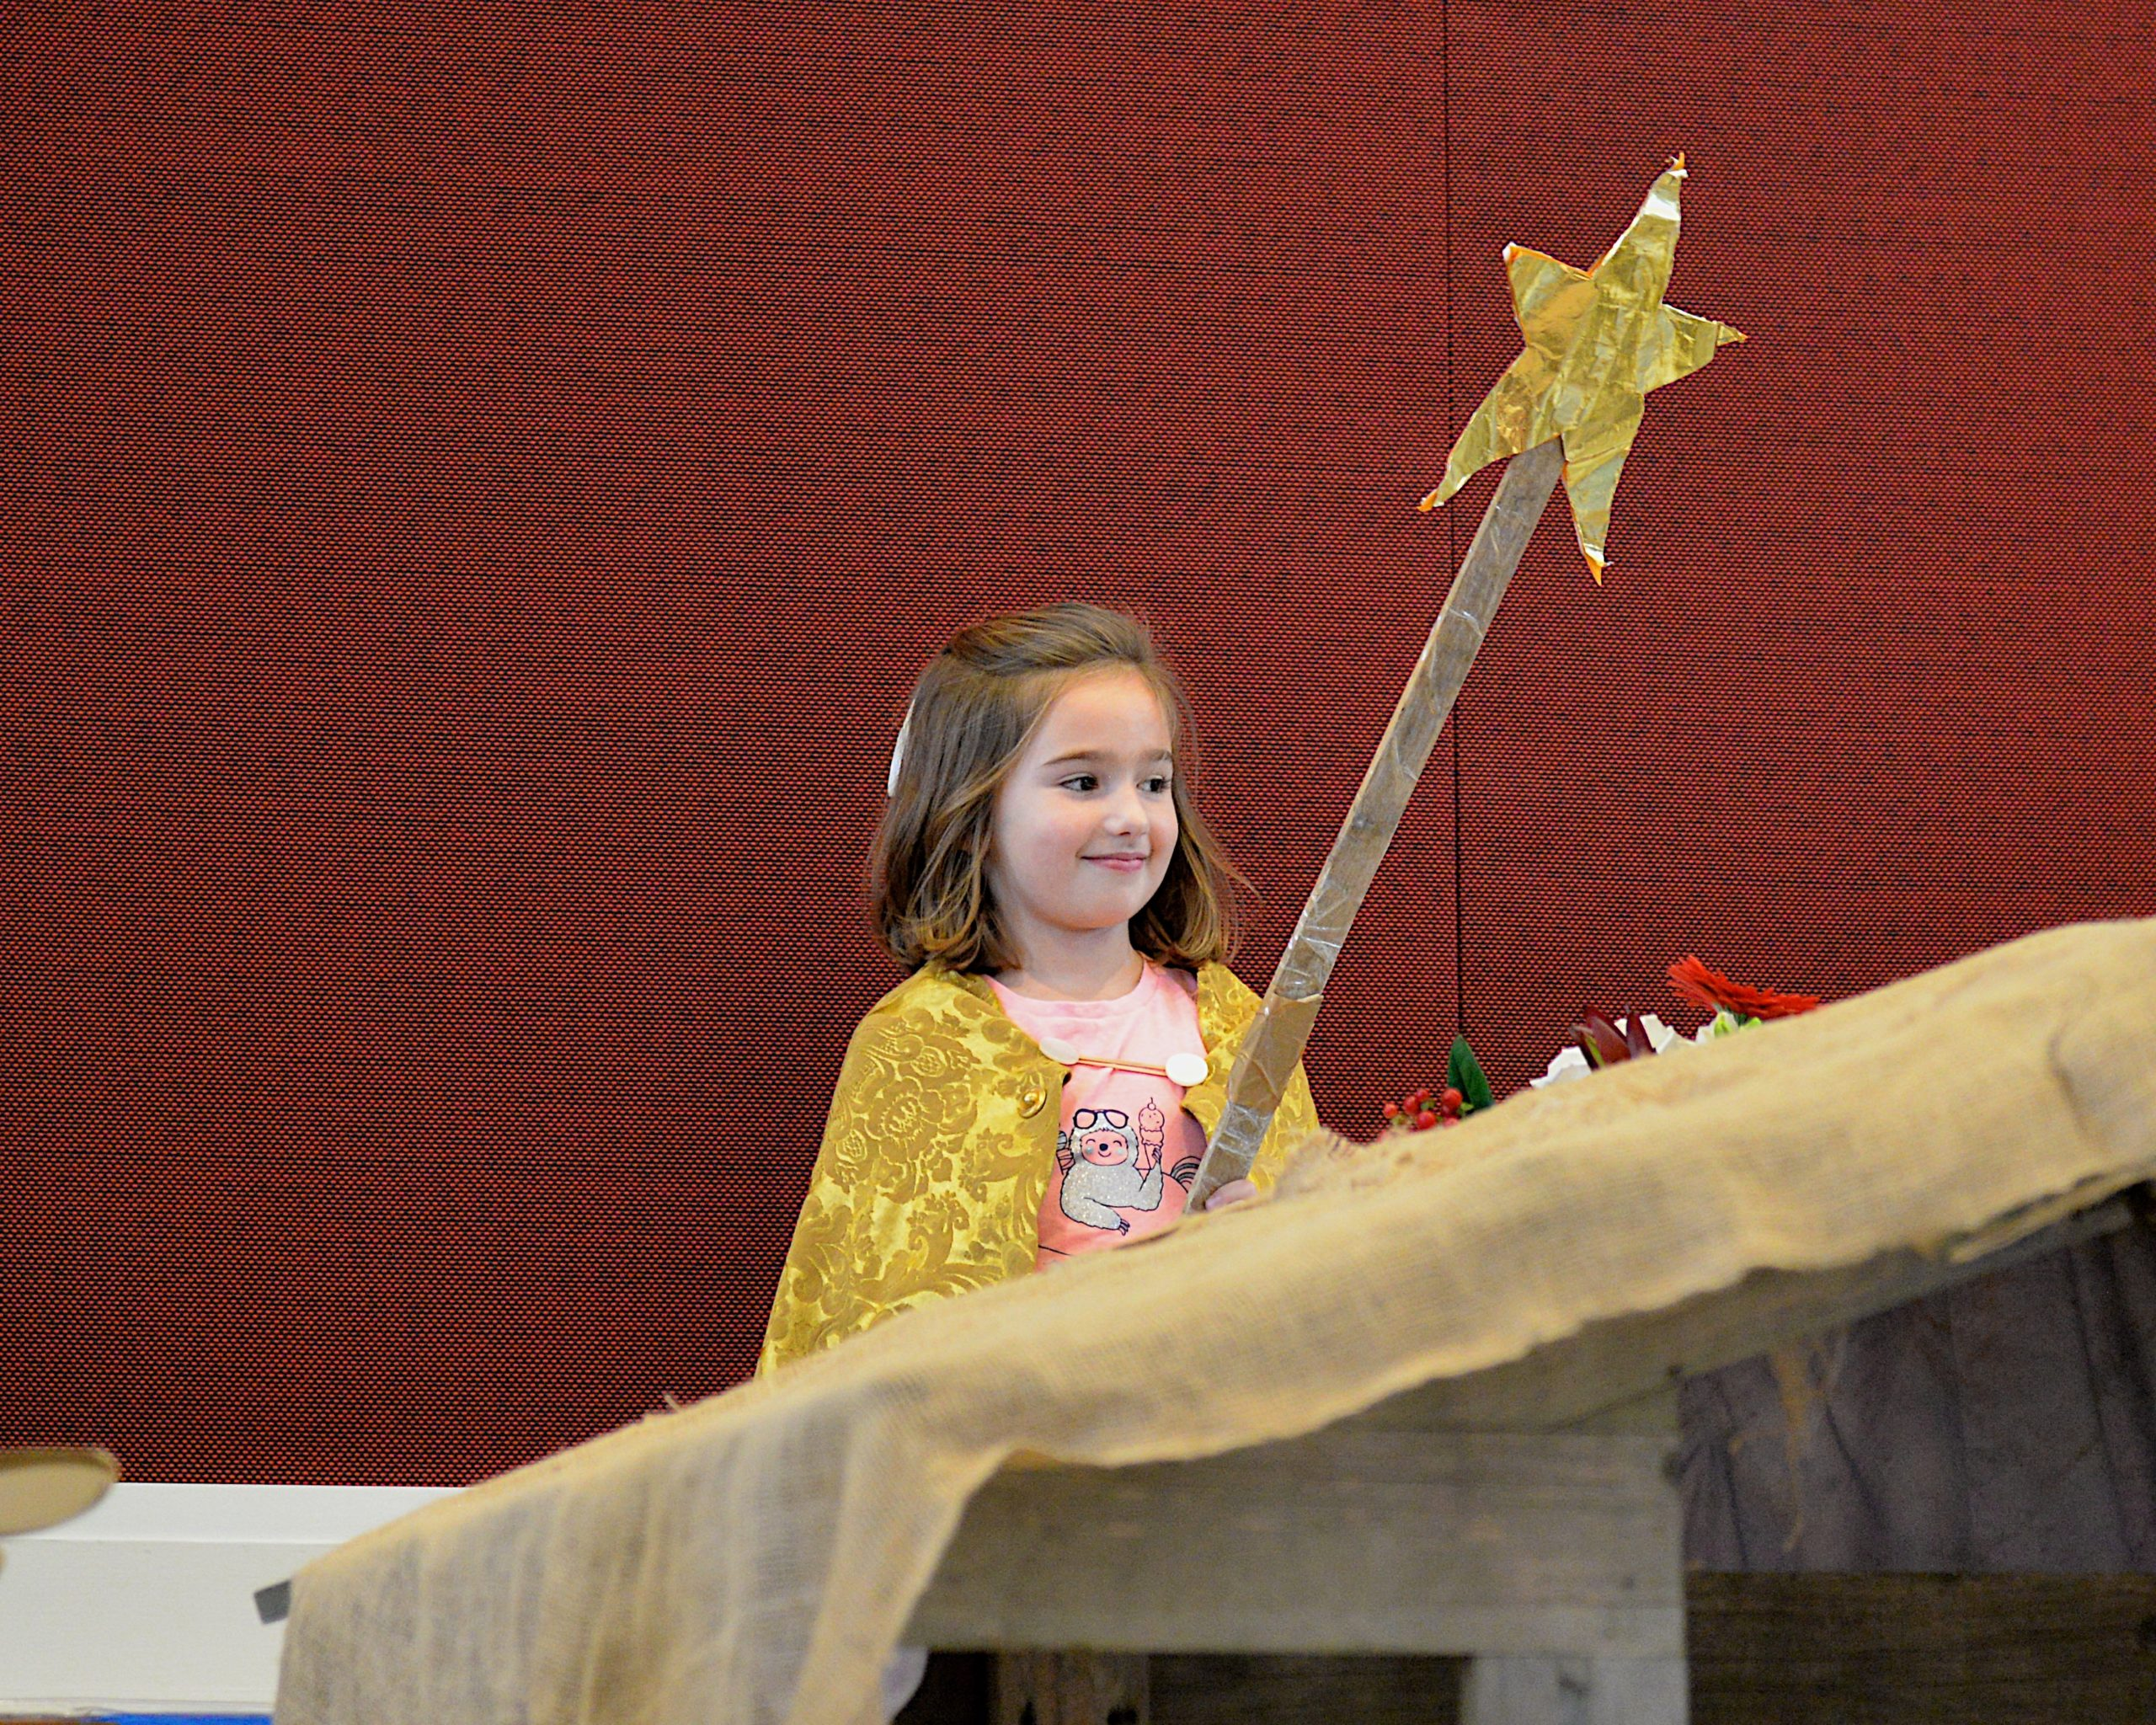 The spirit of Christmas was on full display during the children's pageant at the East Hampton Presbyterian Church on Sunday. KYRIL BROMLEY